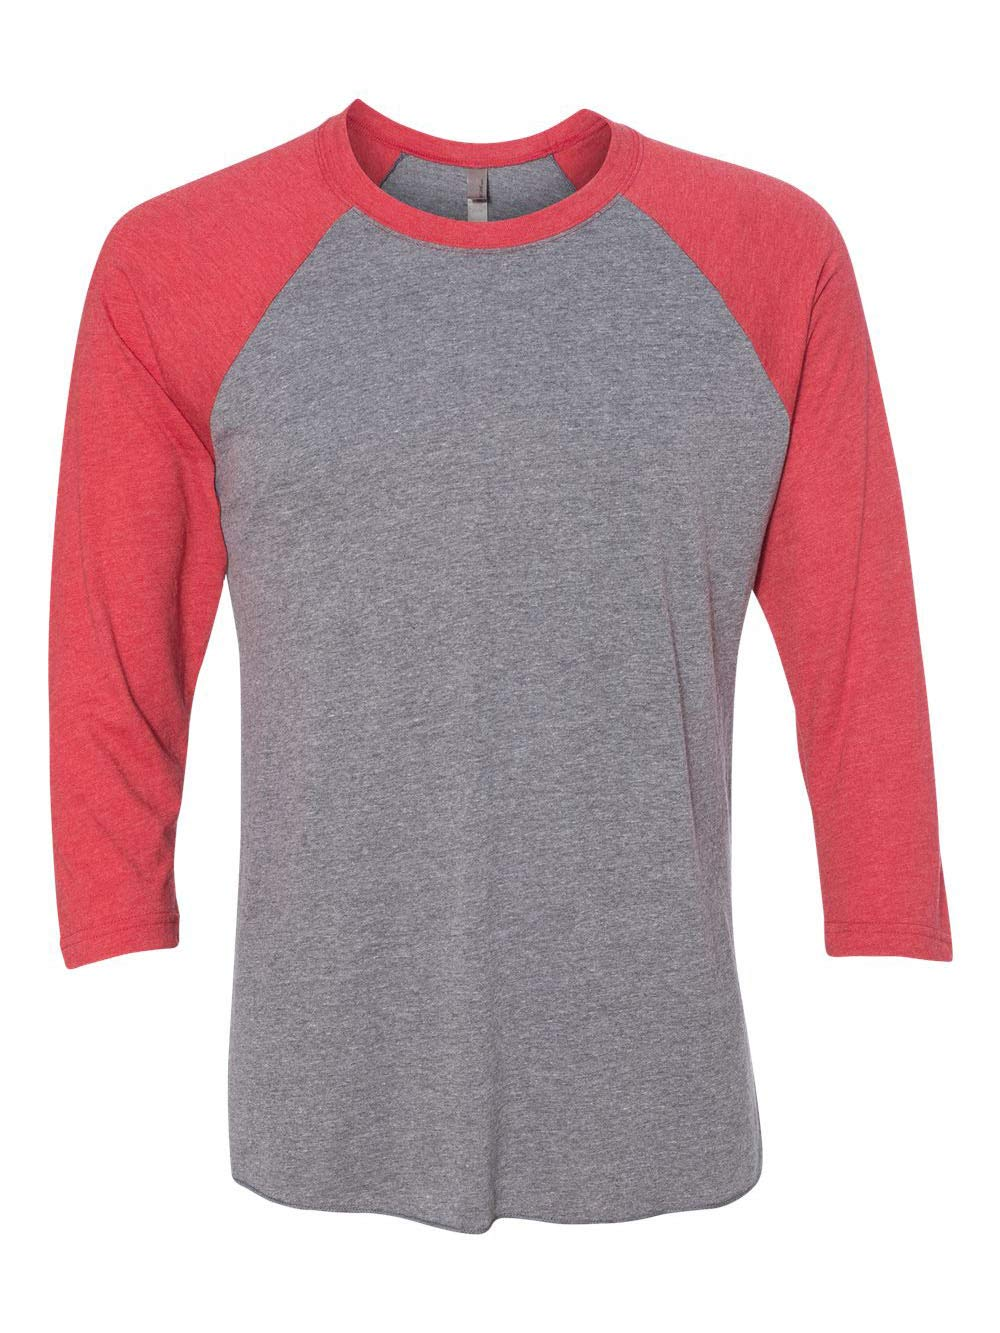 Next Level Apparel 6051 Unisex Tri-Blend 3 By 4 Sleeve Raglan - Vintage Red & Premium Heather, Extra Large by Next Level